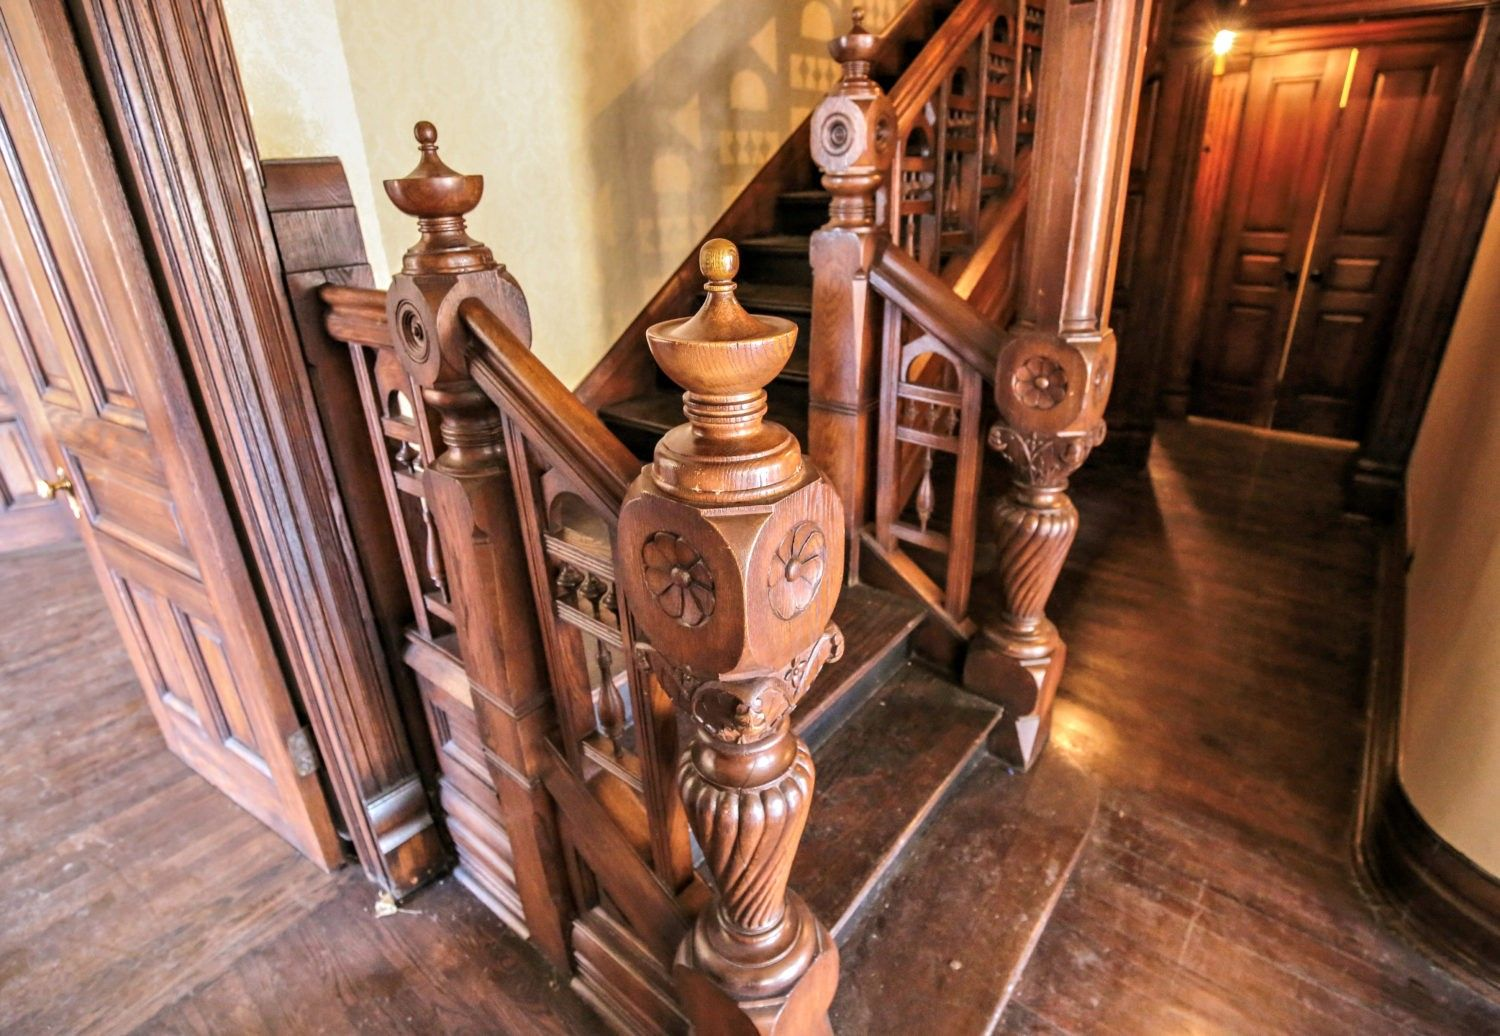 Exceptional Hand Carved 1880 S Salvaged Chicago Solid Oak Interior Residential Newel Post And Railing With A Uniform Stained Fini Solid Oak Newel Posts Railing